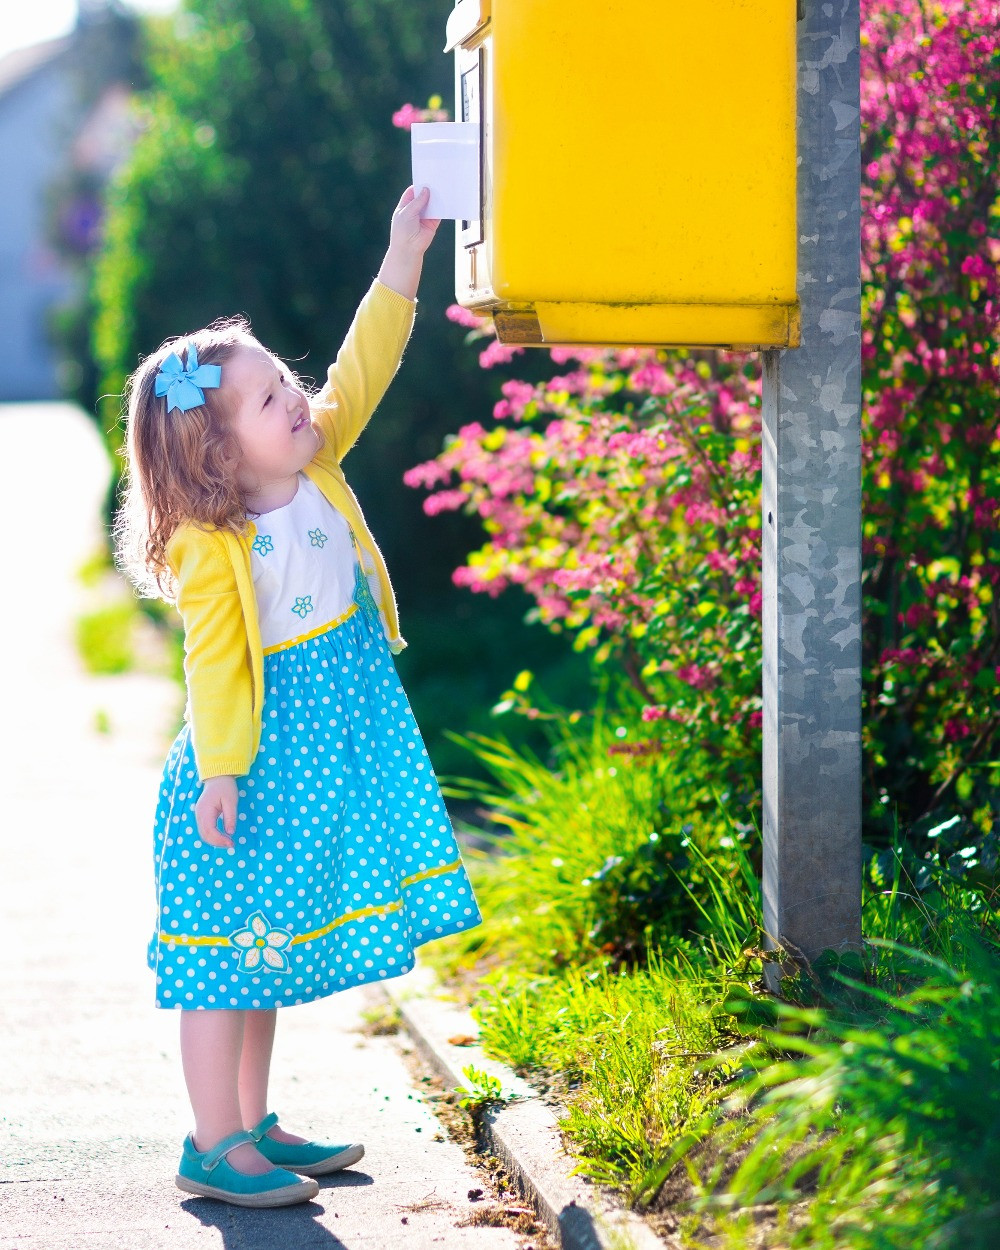 A little girl reaches up to put a letter into a tall, yellow mailbox on a sunny day.